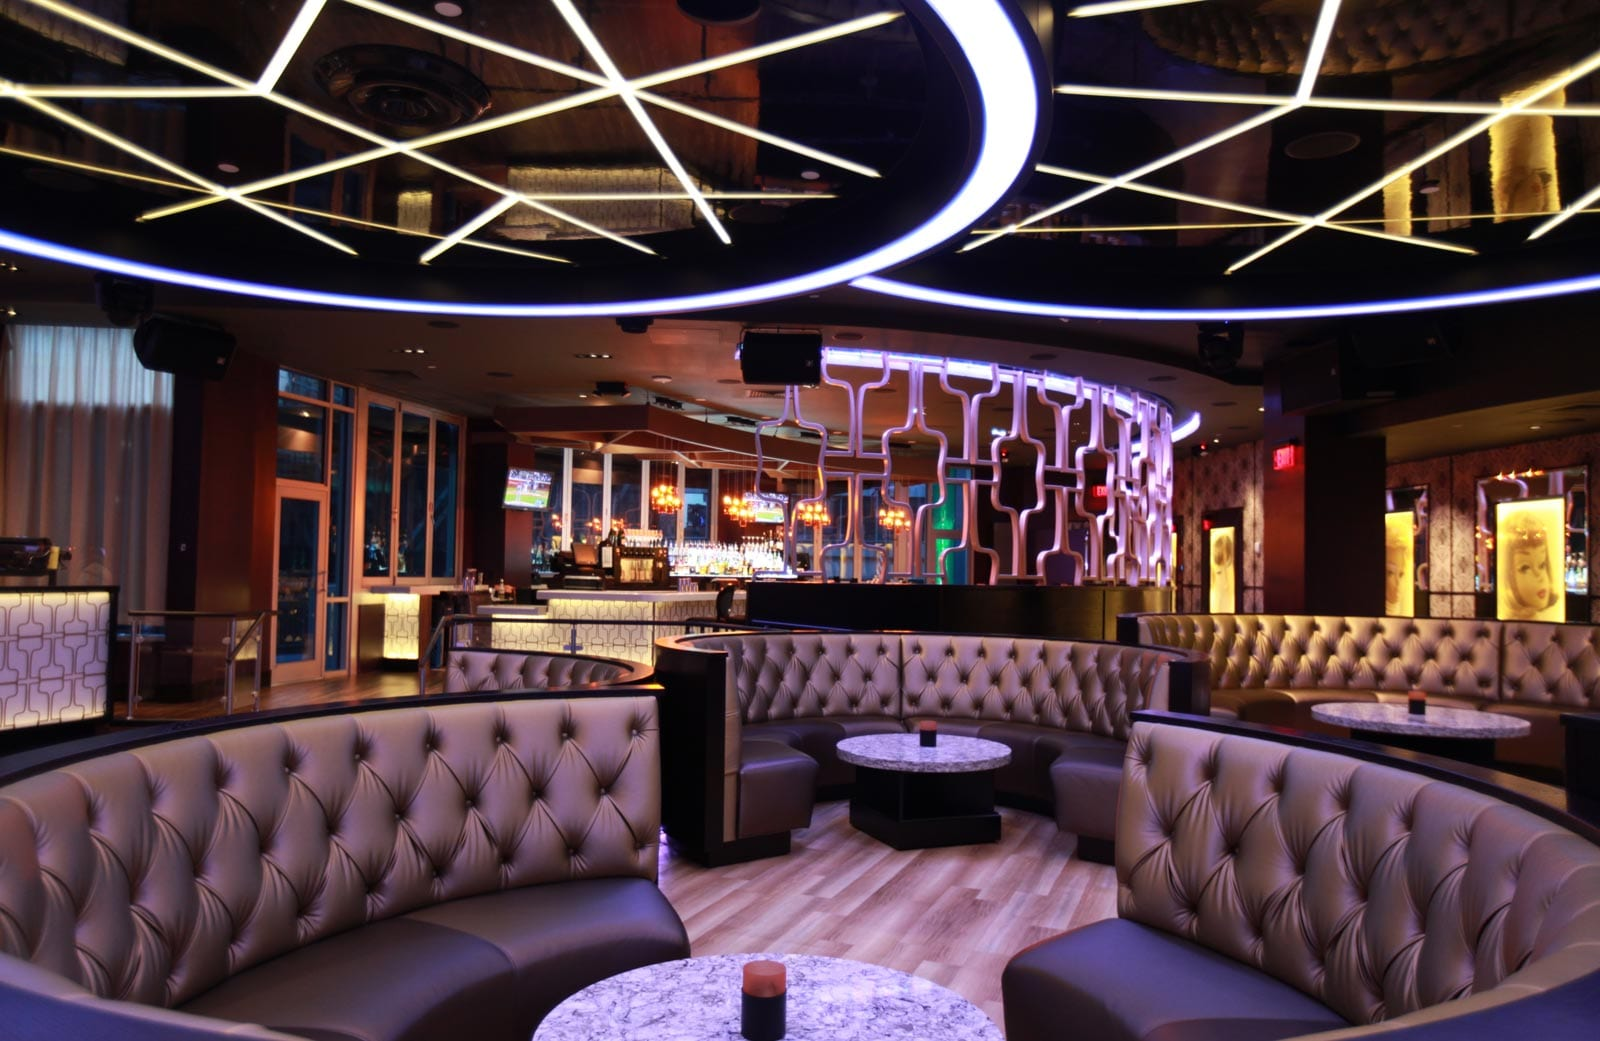 Design Lounge Buiten Bubble Hotel Restaurant And Nightclub Design By Big Time